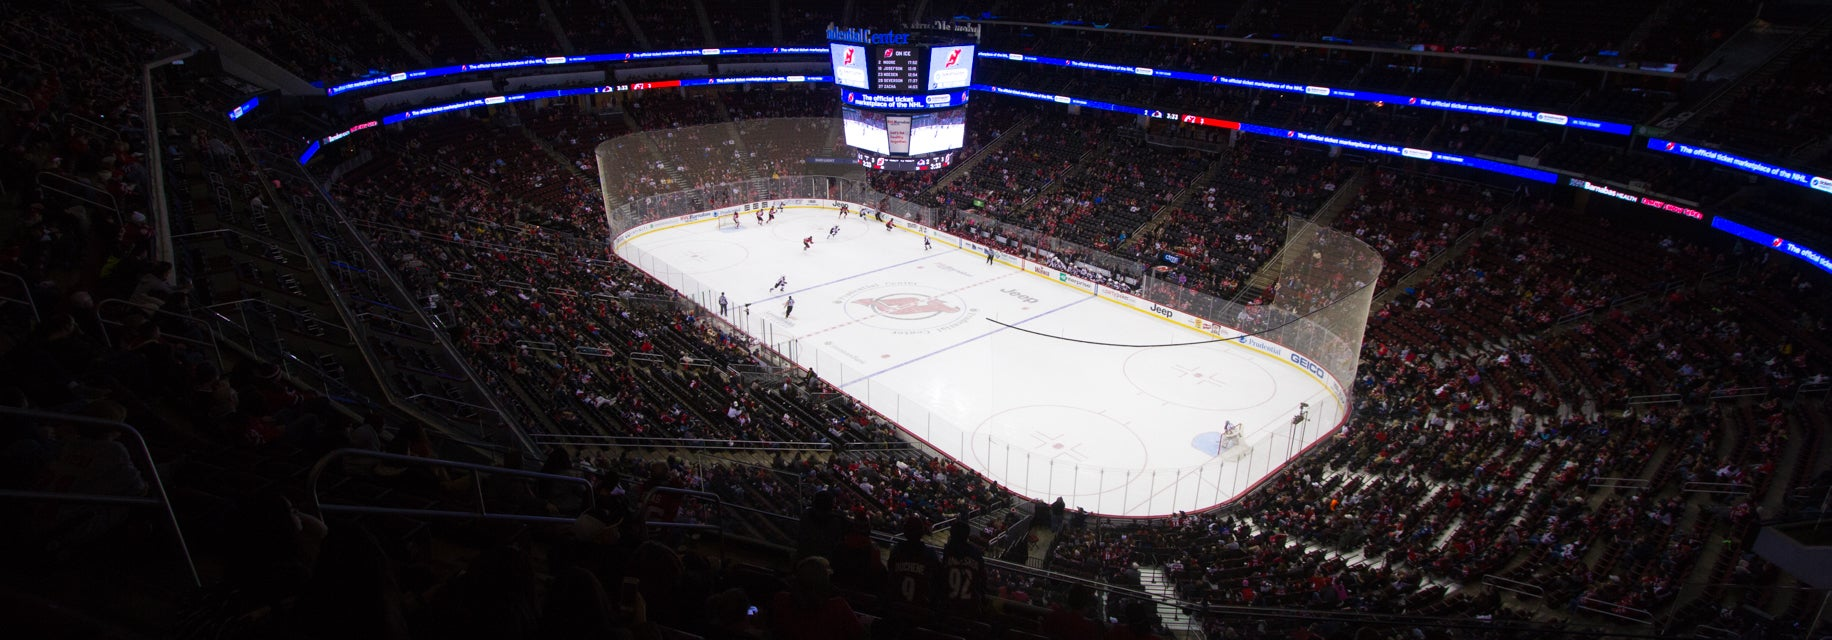 Seat view from Mezzanine Sides